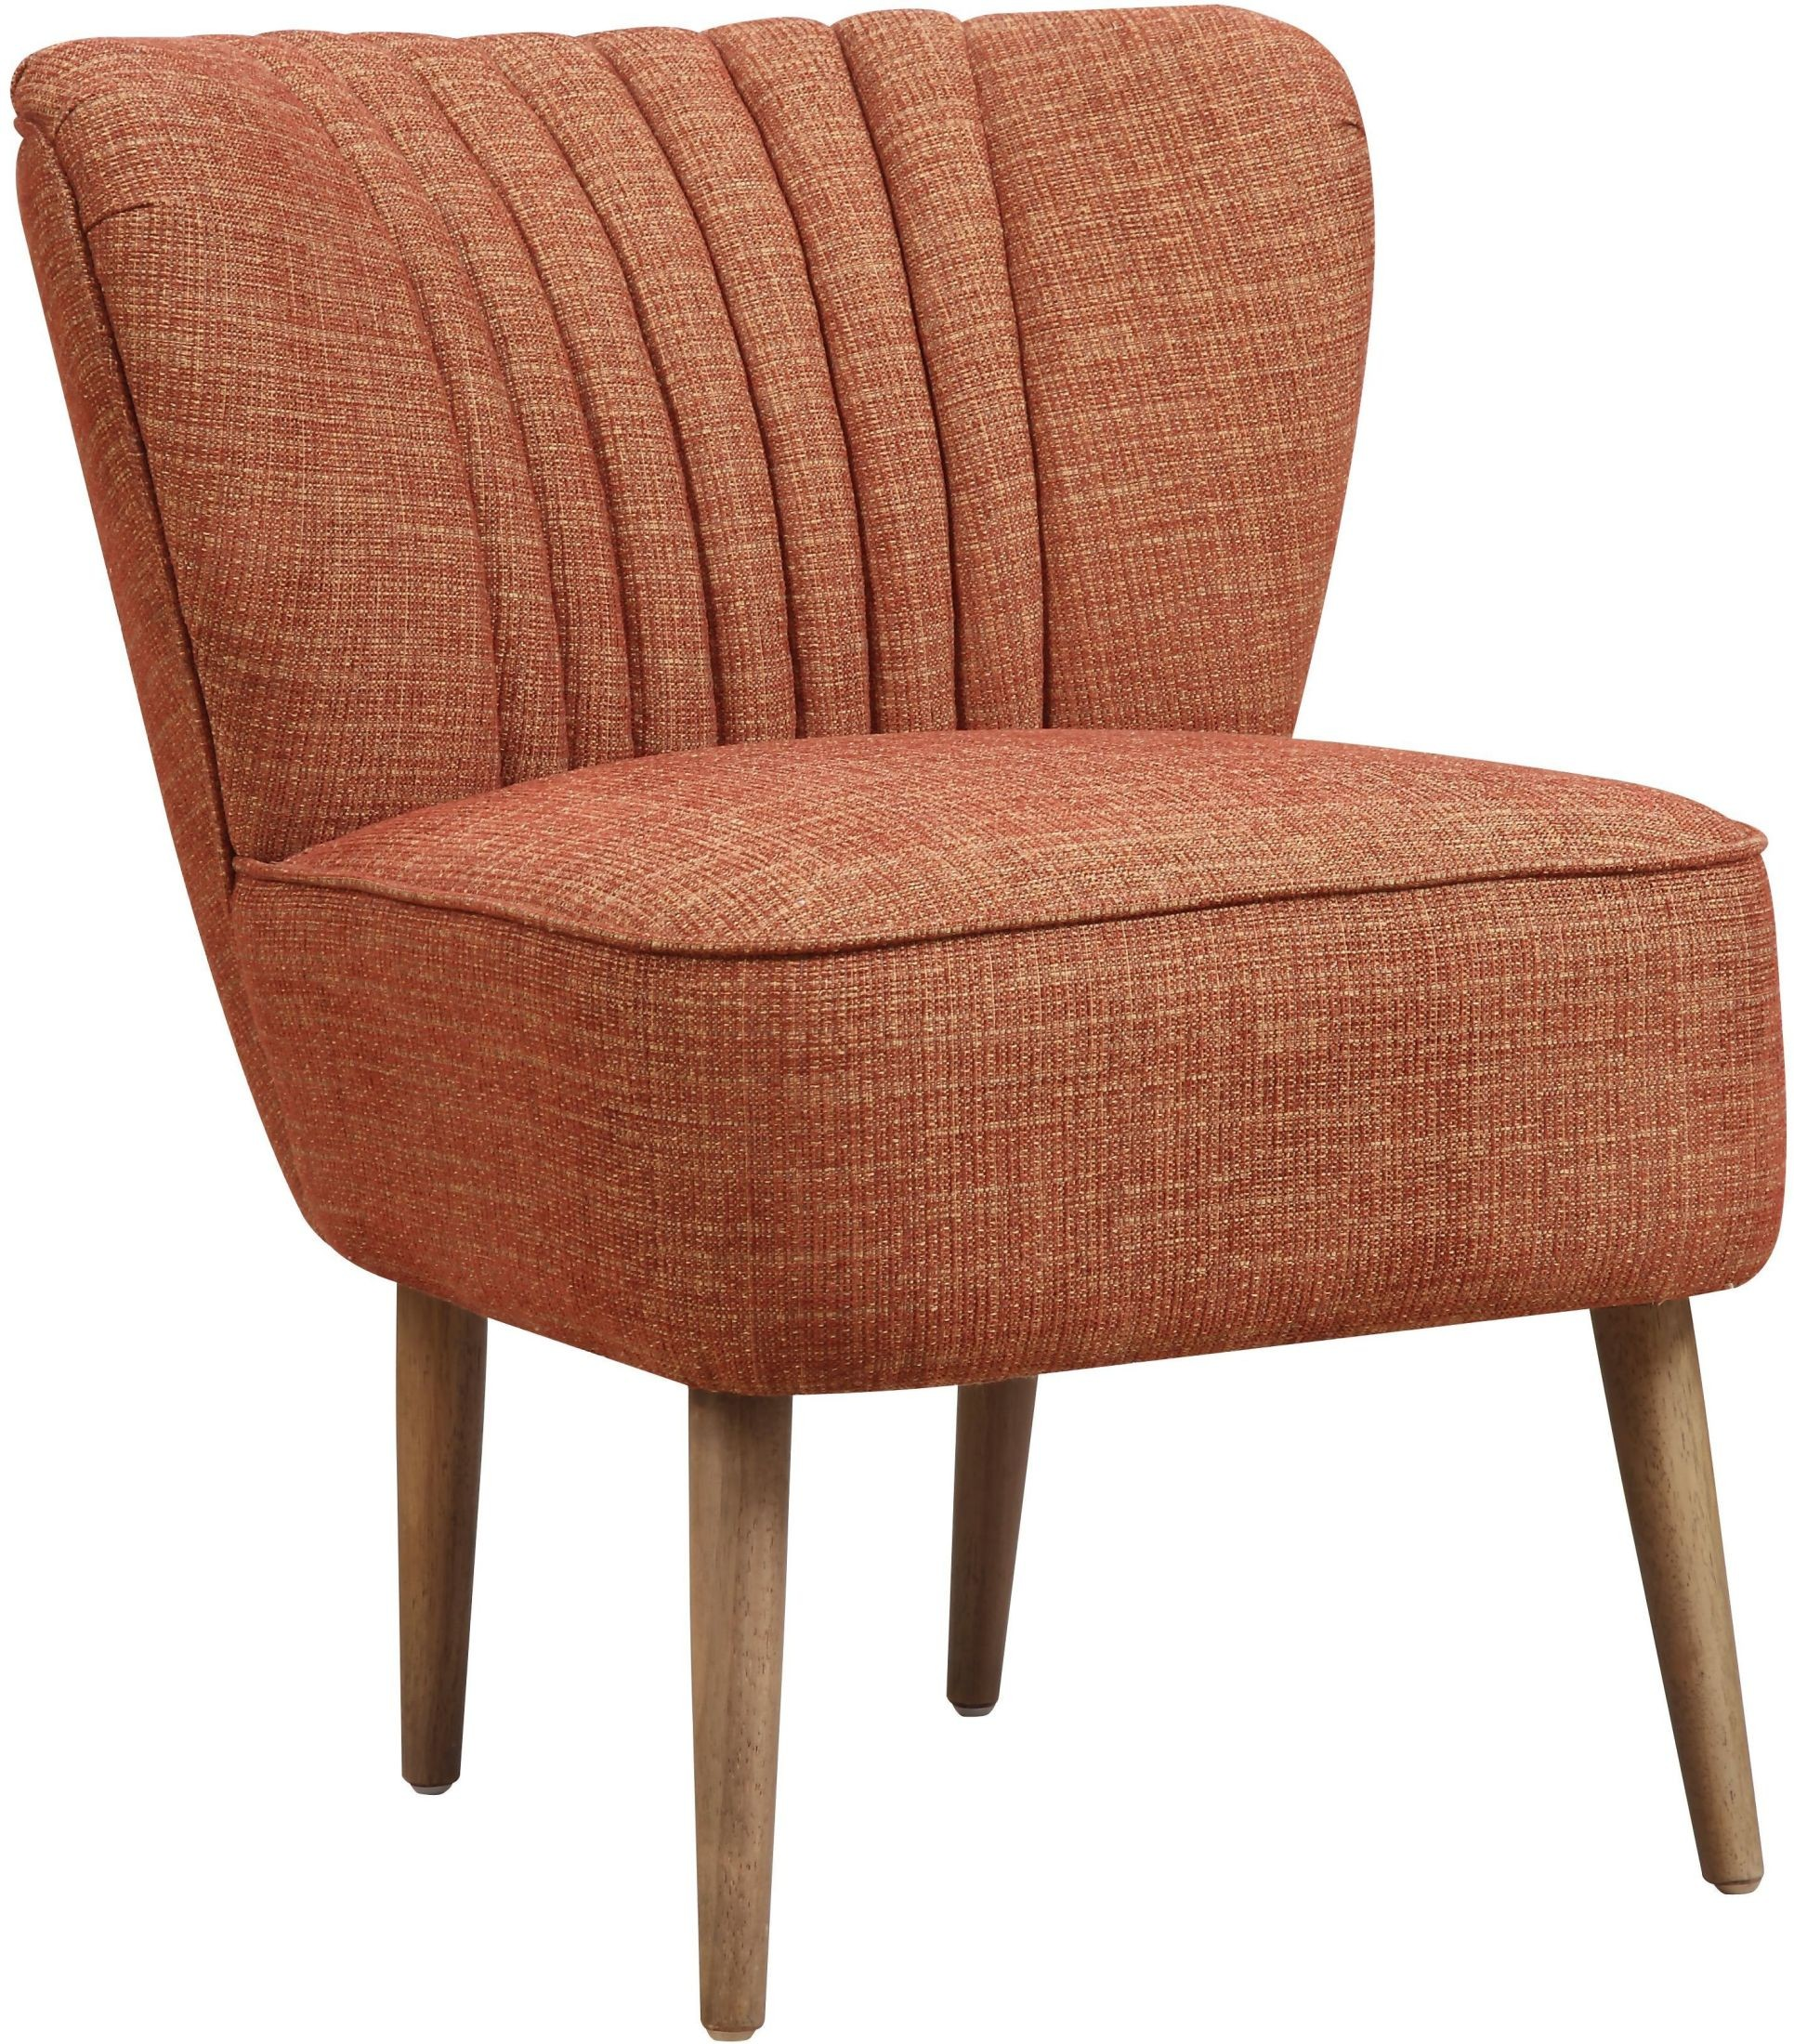 mid century accent chair phil and ted lobster recall kenrdrick ember vertically channeled